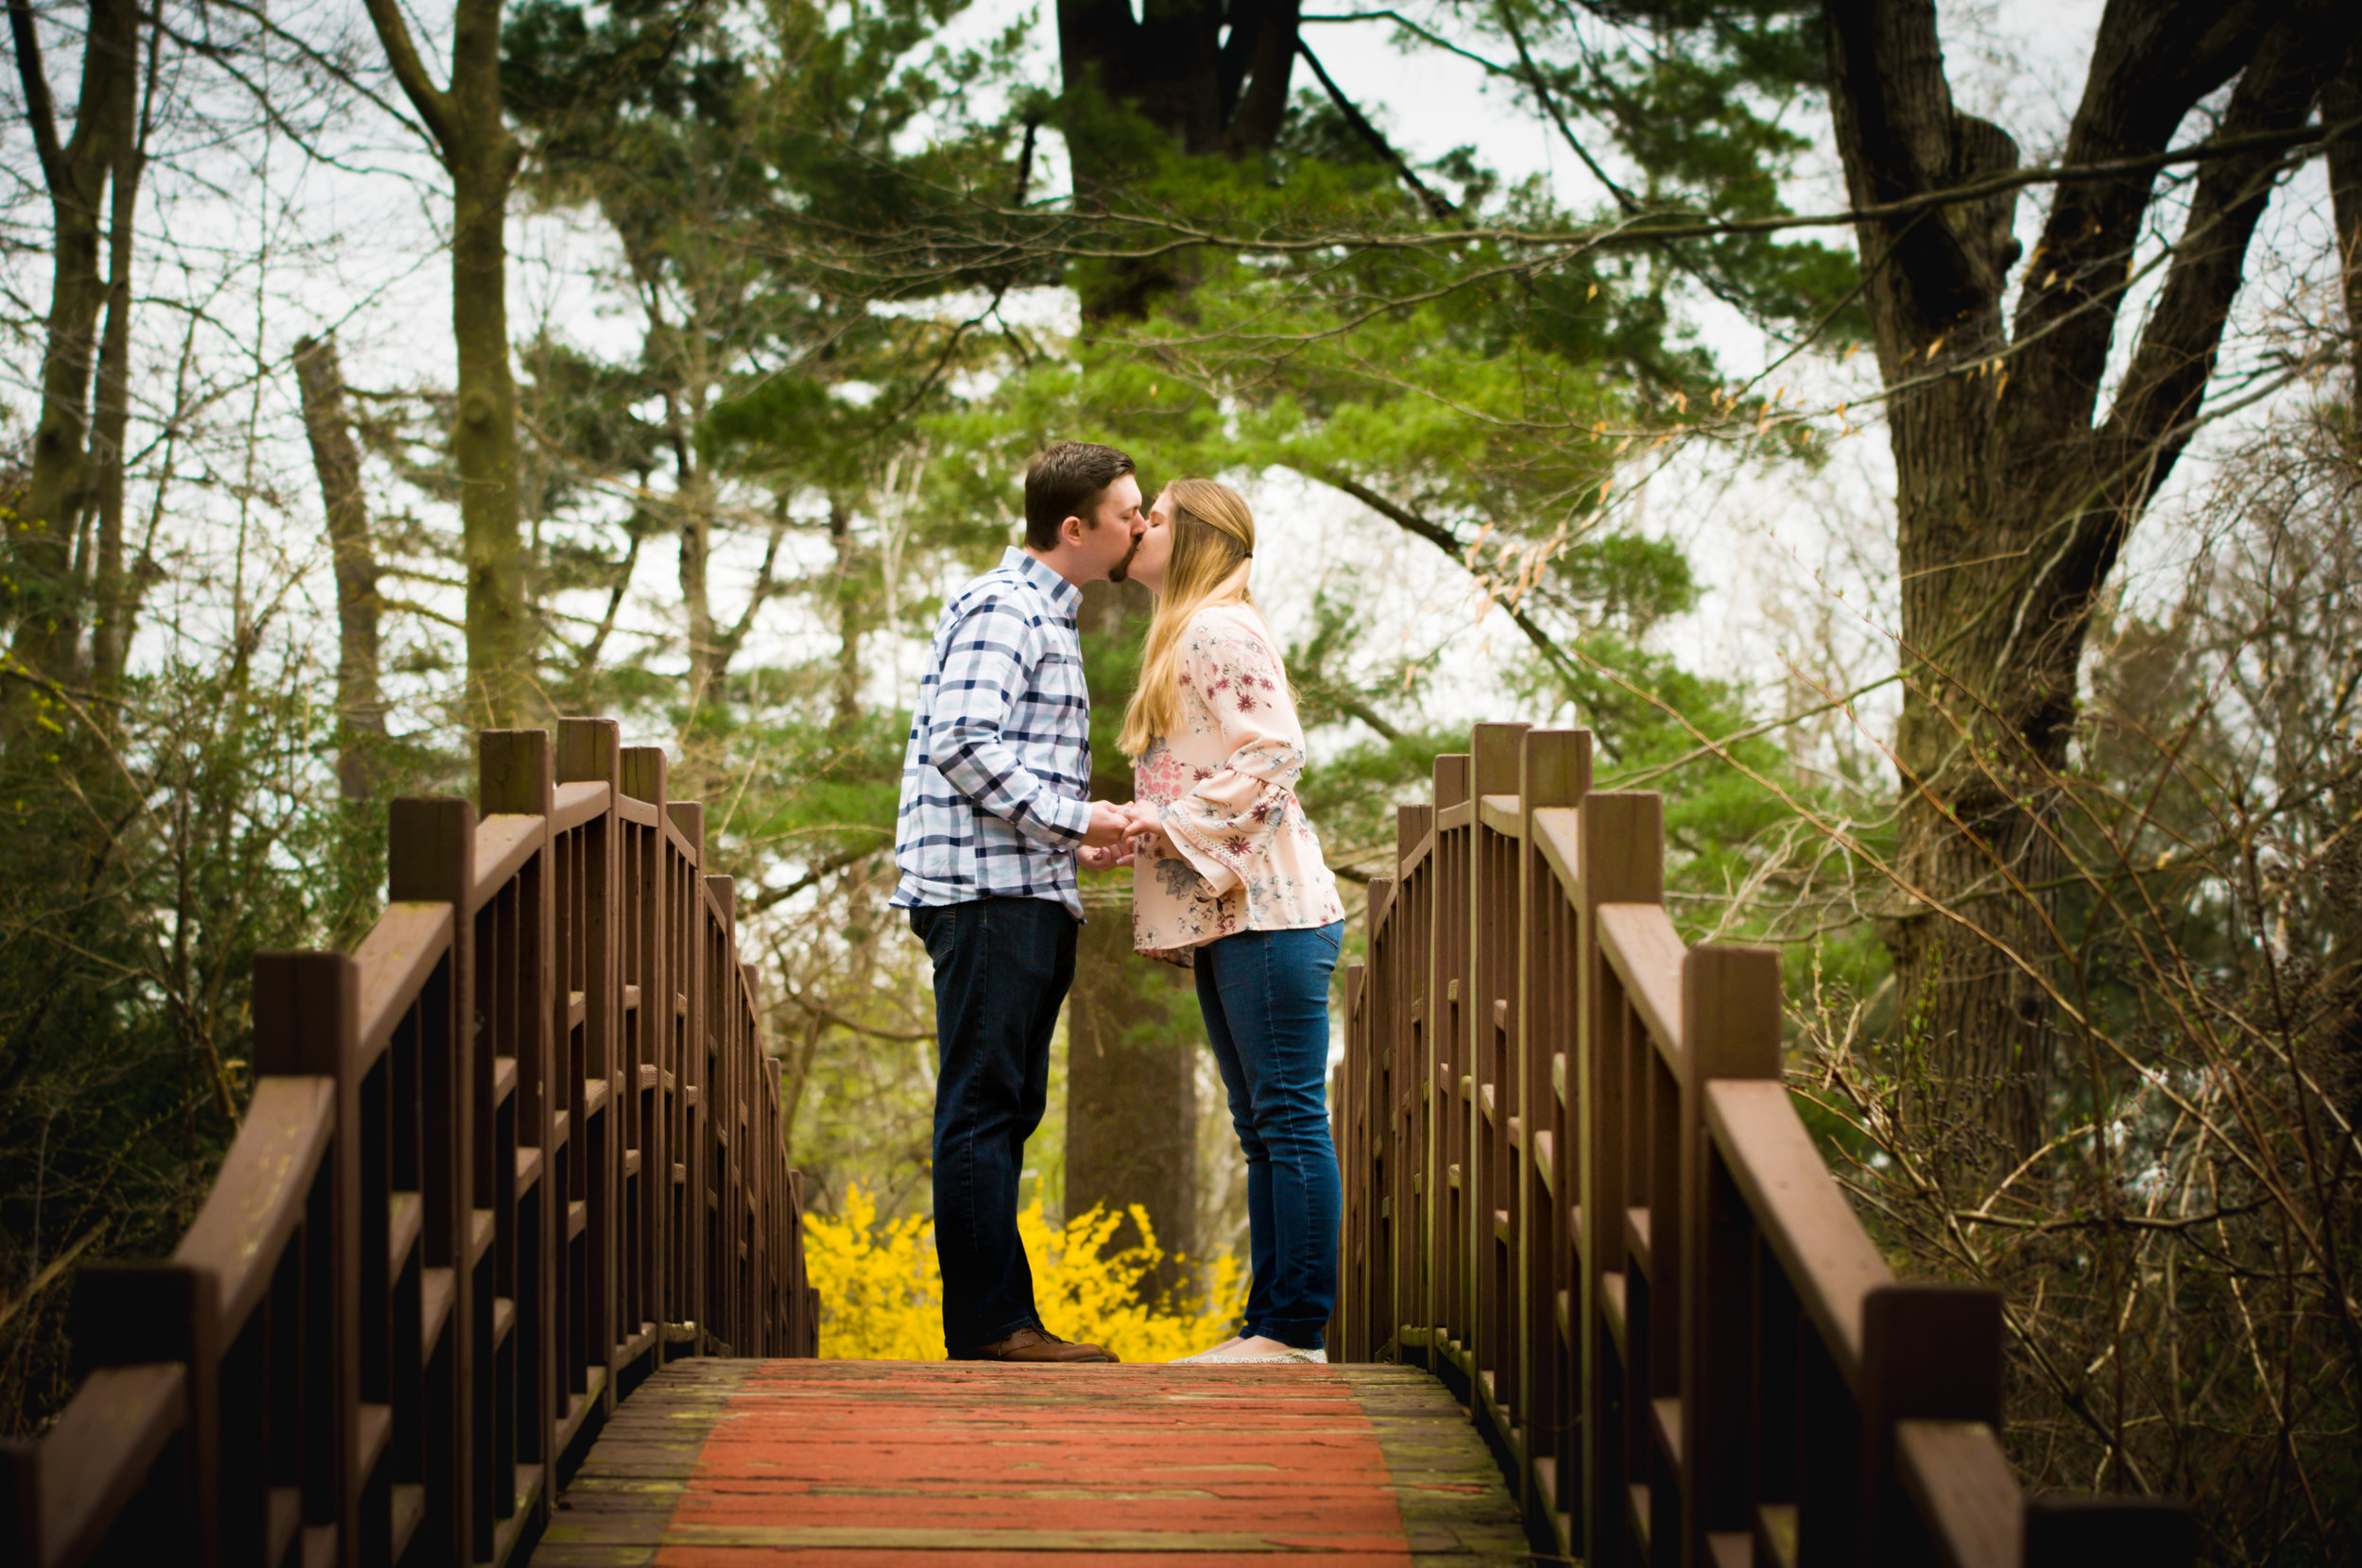 CarrieWestonStudios_Engagement_Wedding_Portraits_NY_Photography_Photographer-2.jpg